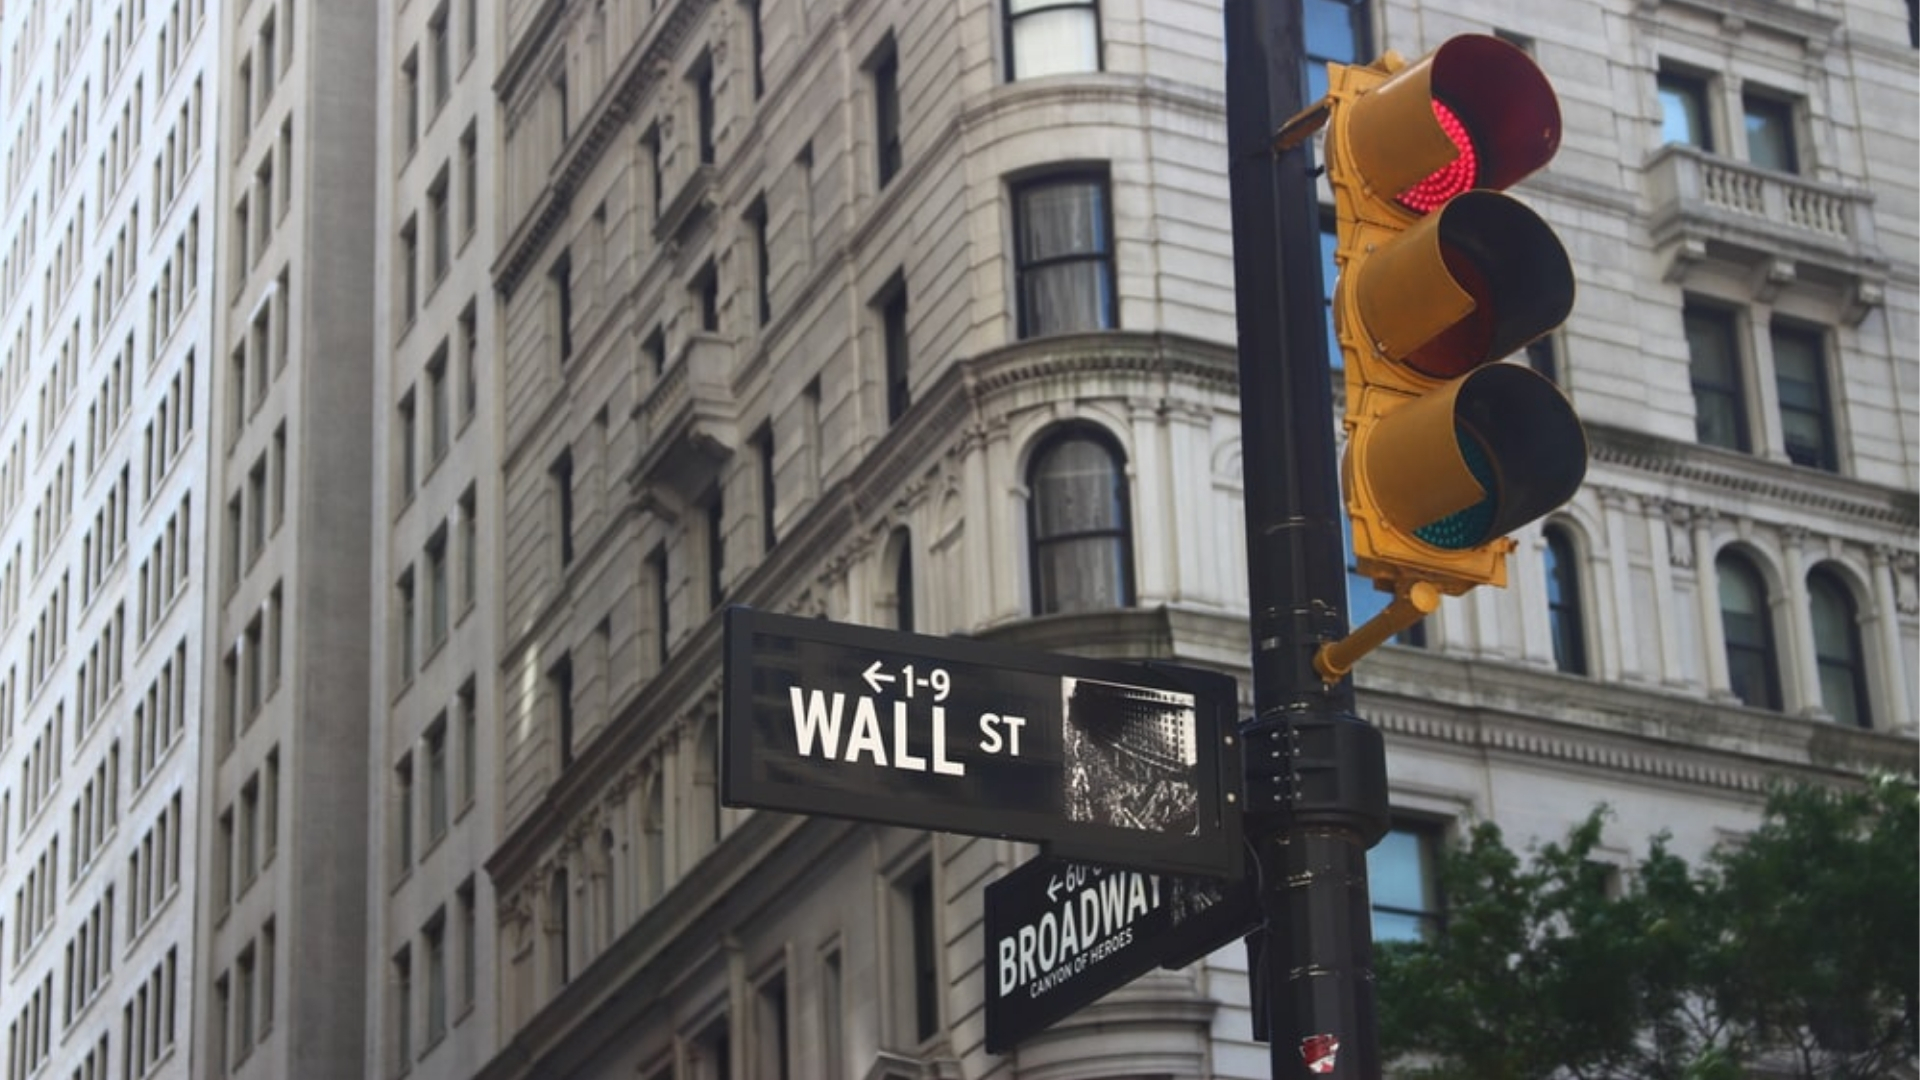 Wall street images